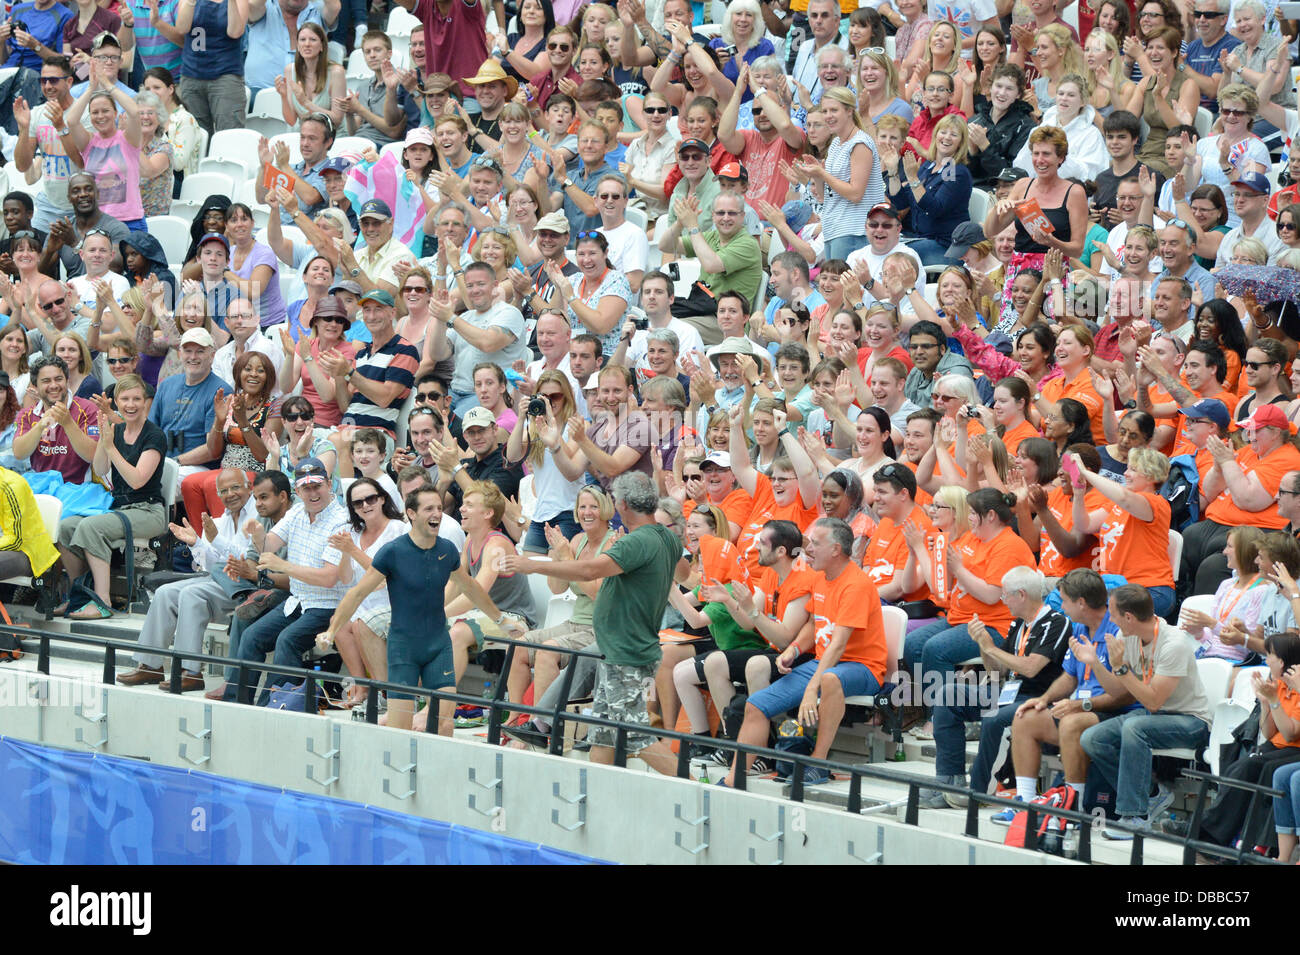 LONDON, UK. Saturday 27th July 2013. Renaud Lavillenie of France runs into the crowd to celebrate winning the Men's - Stock Image